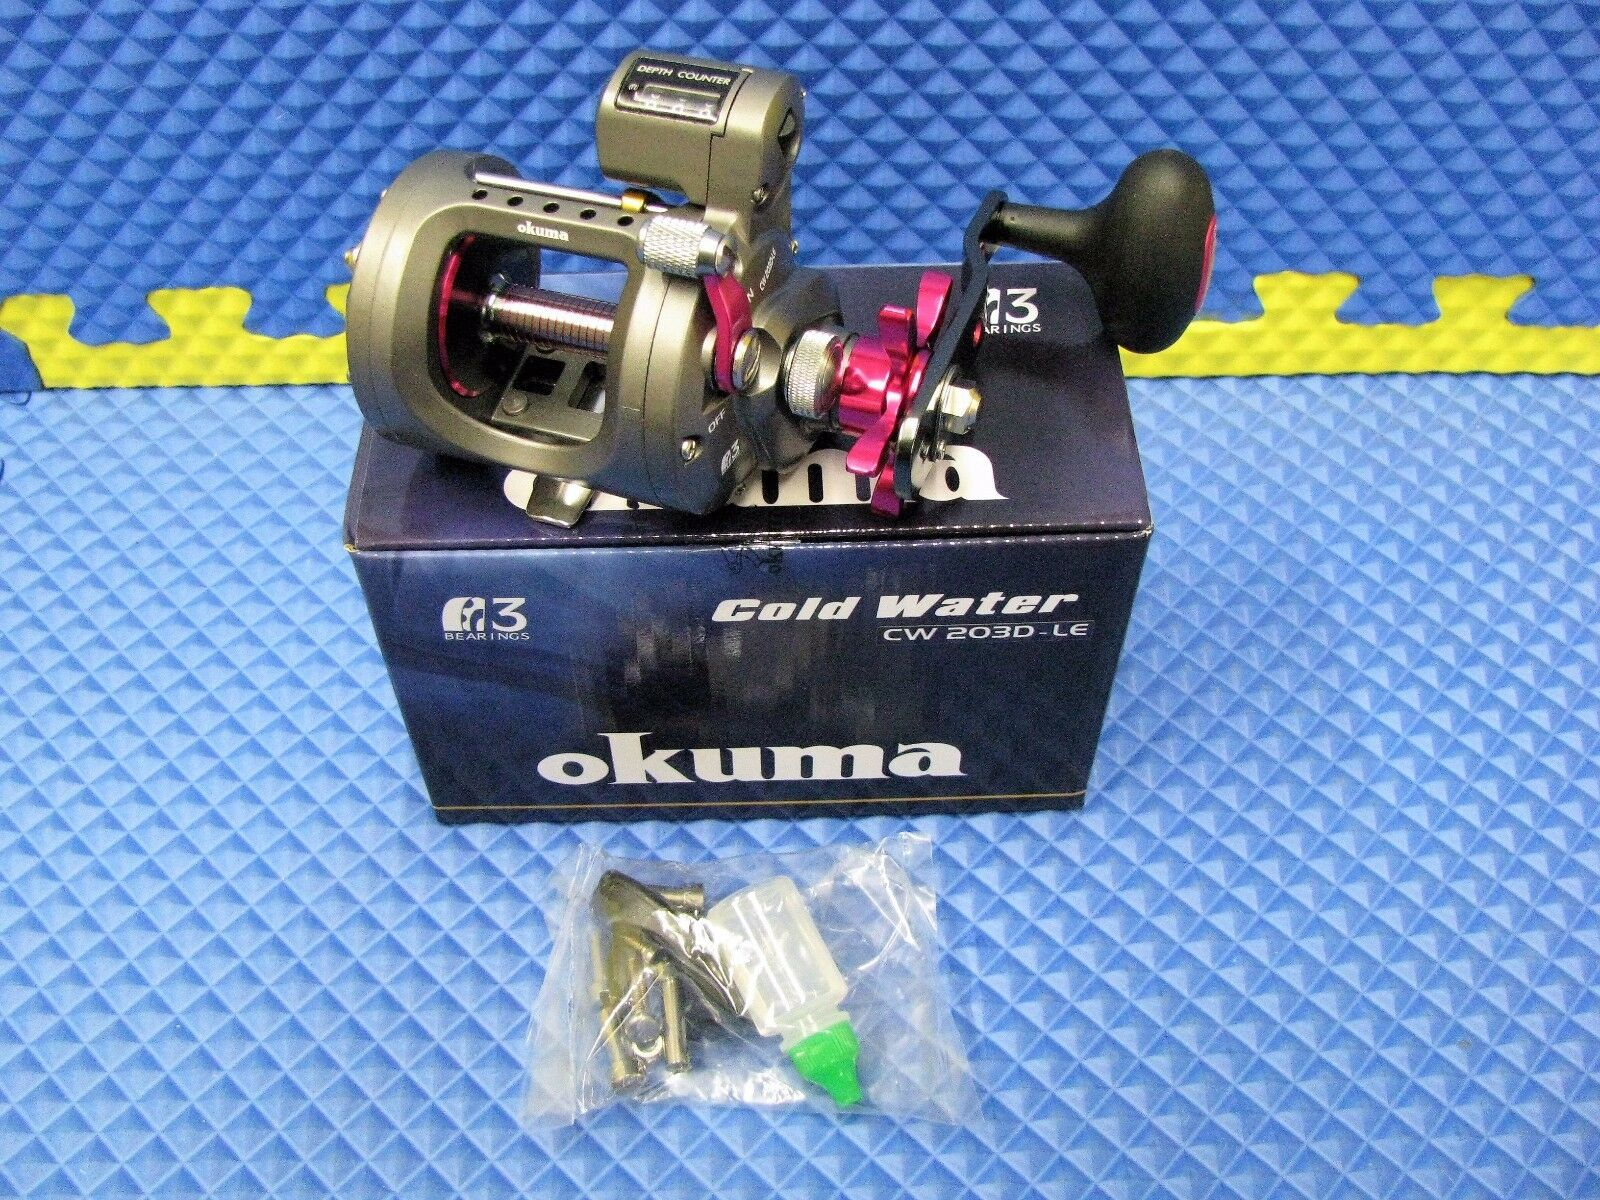 Okuma  Cold Water Trolling Line Counter Reel Ladies Edition CW-203D-LE  clients first reputation first